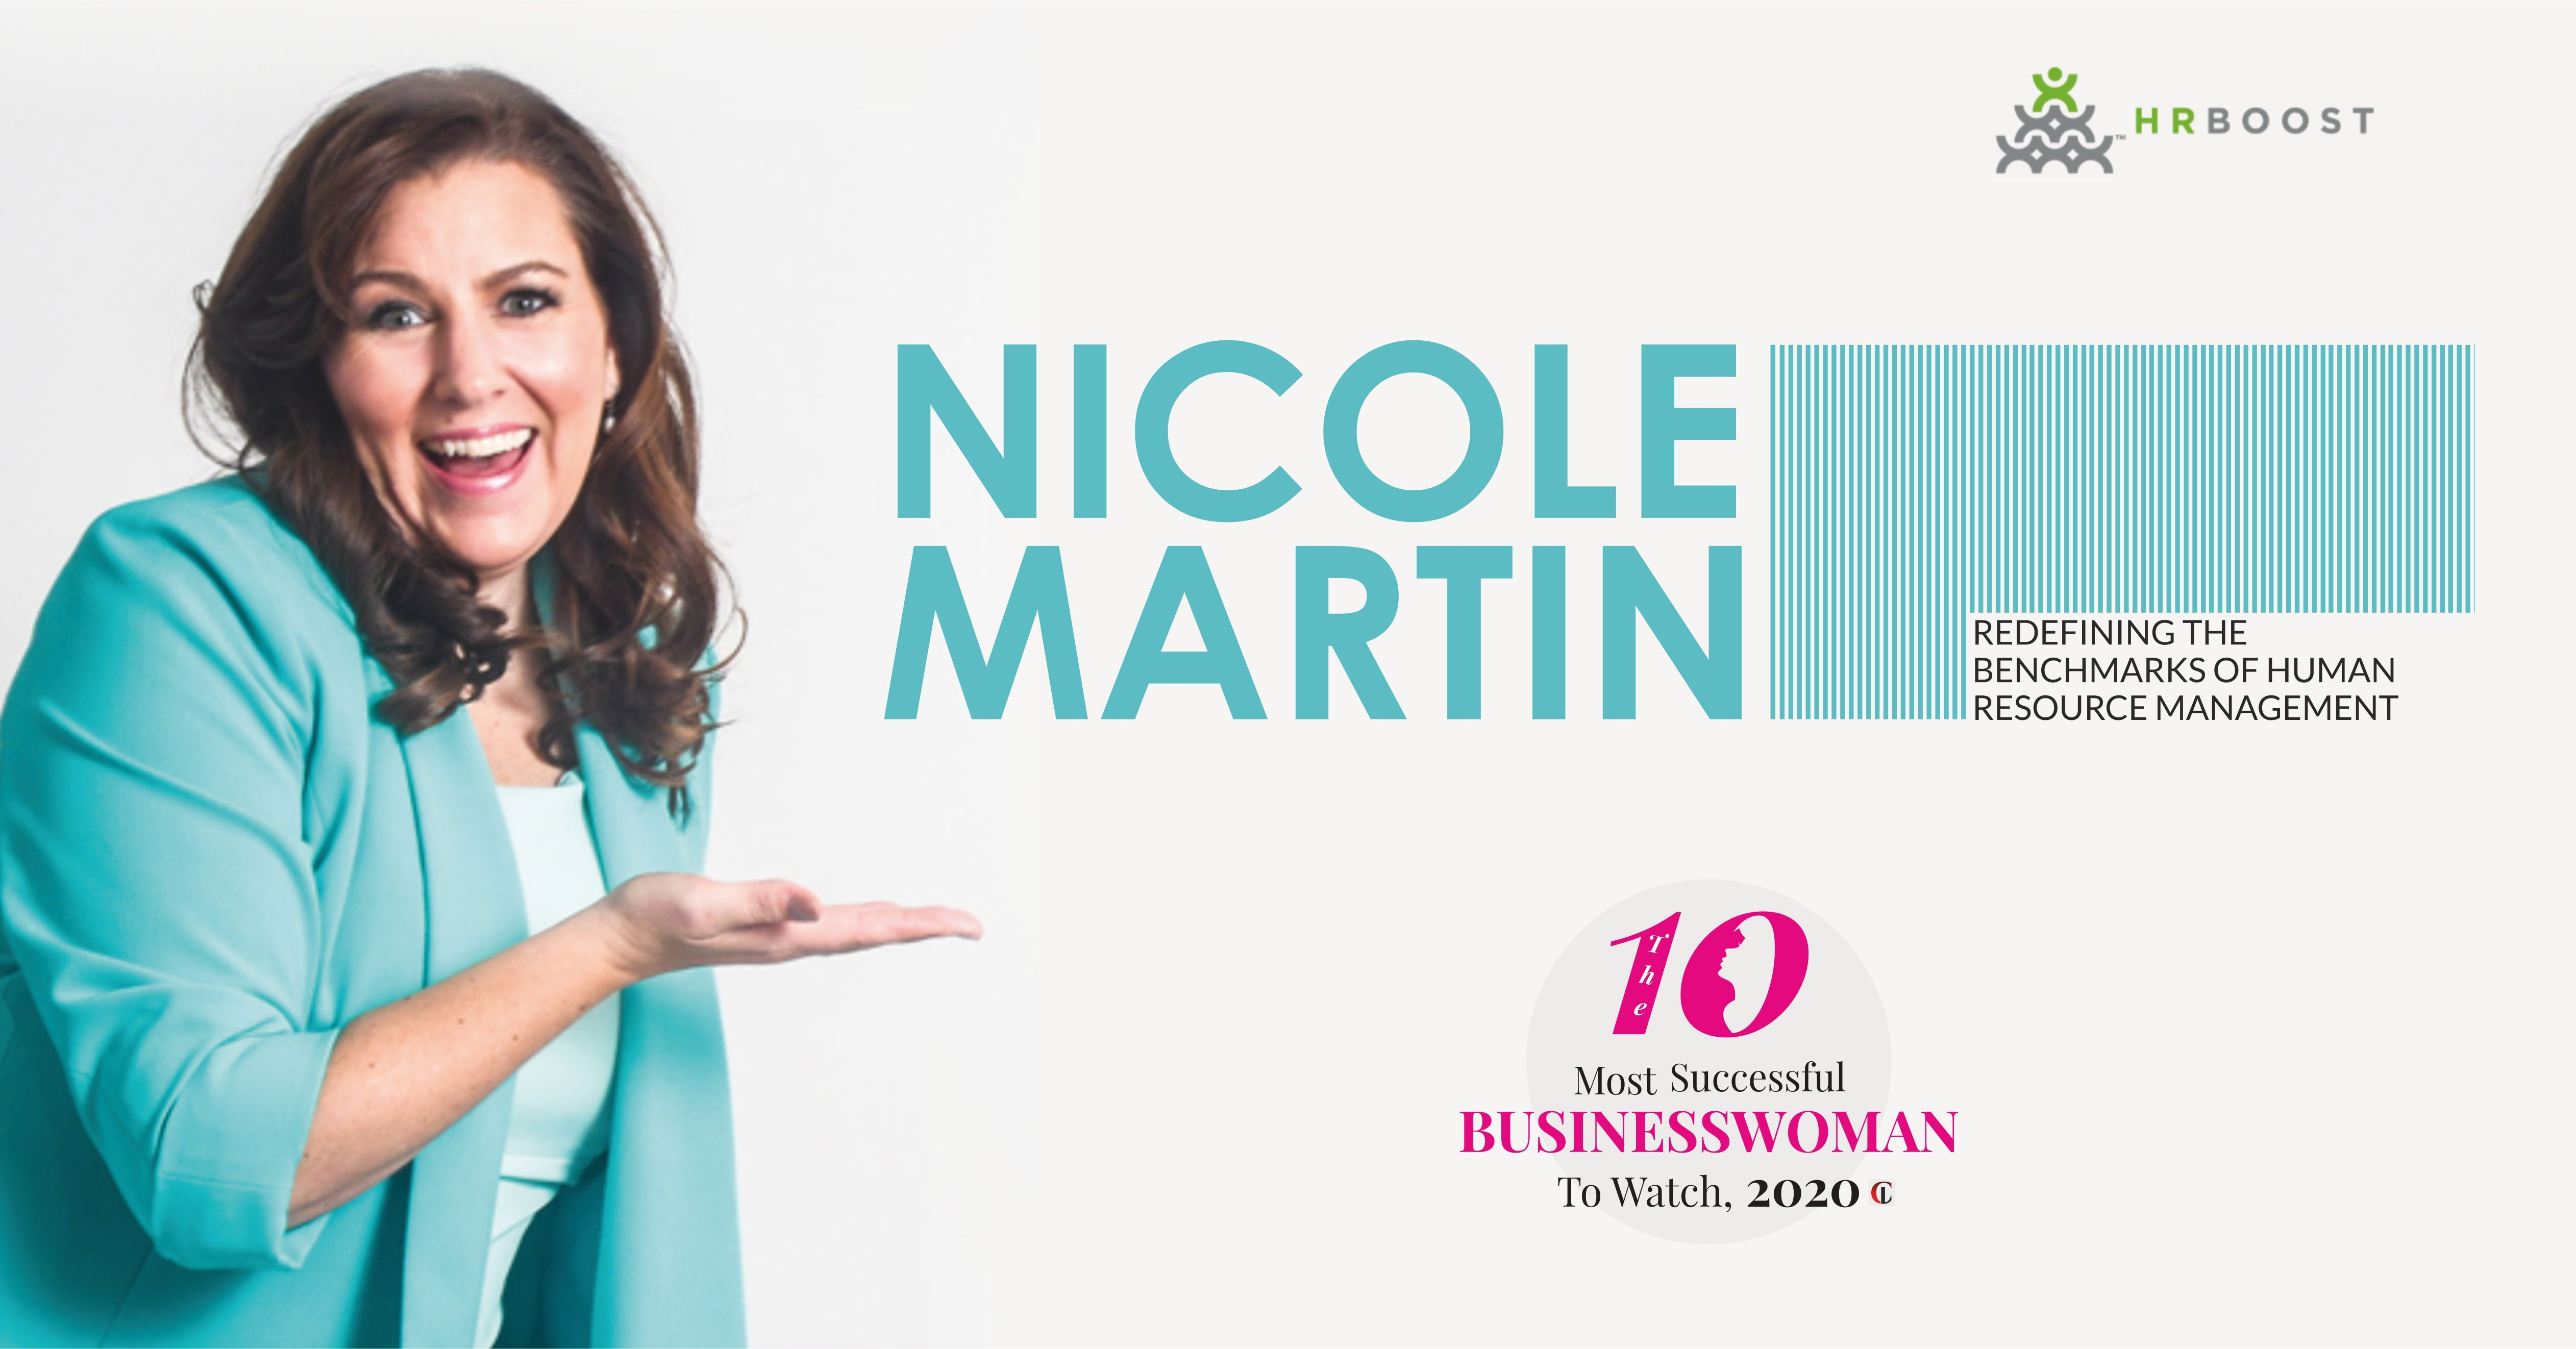 Nicole Martin Benchmarks of Human Resource Management in